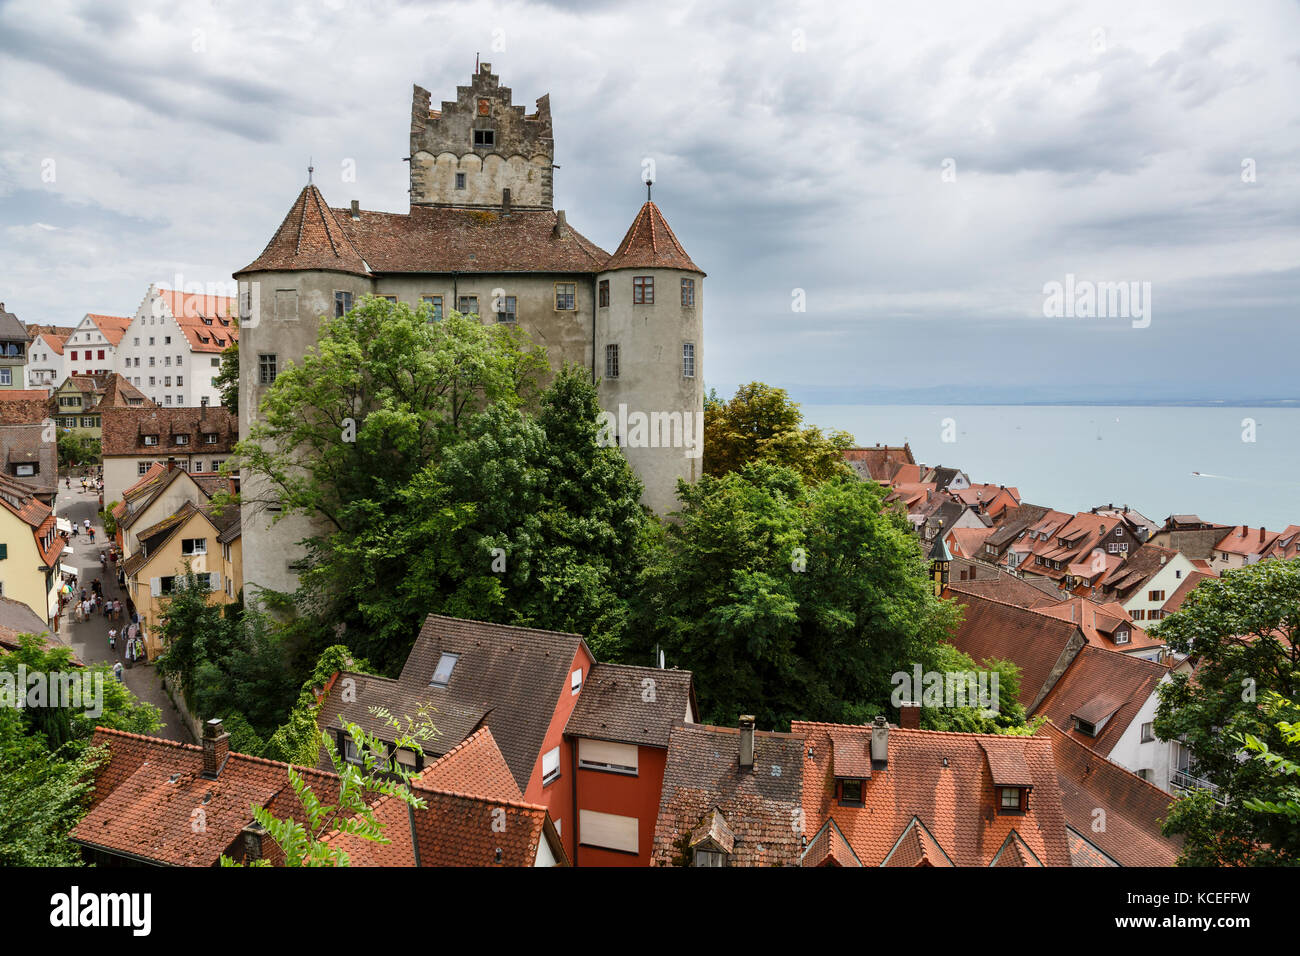 Meersburg's Old Castle Castle (Altes Schloss) and Lake Constance (Bodensee), Baden-Württemberg, Germany Stock Photo